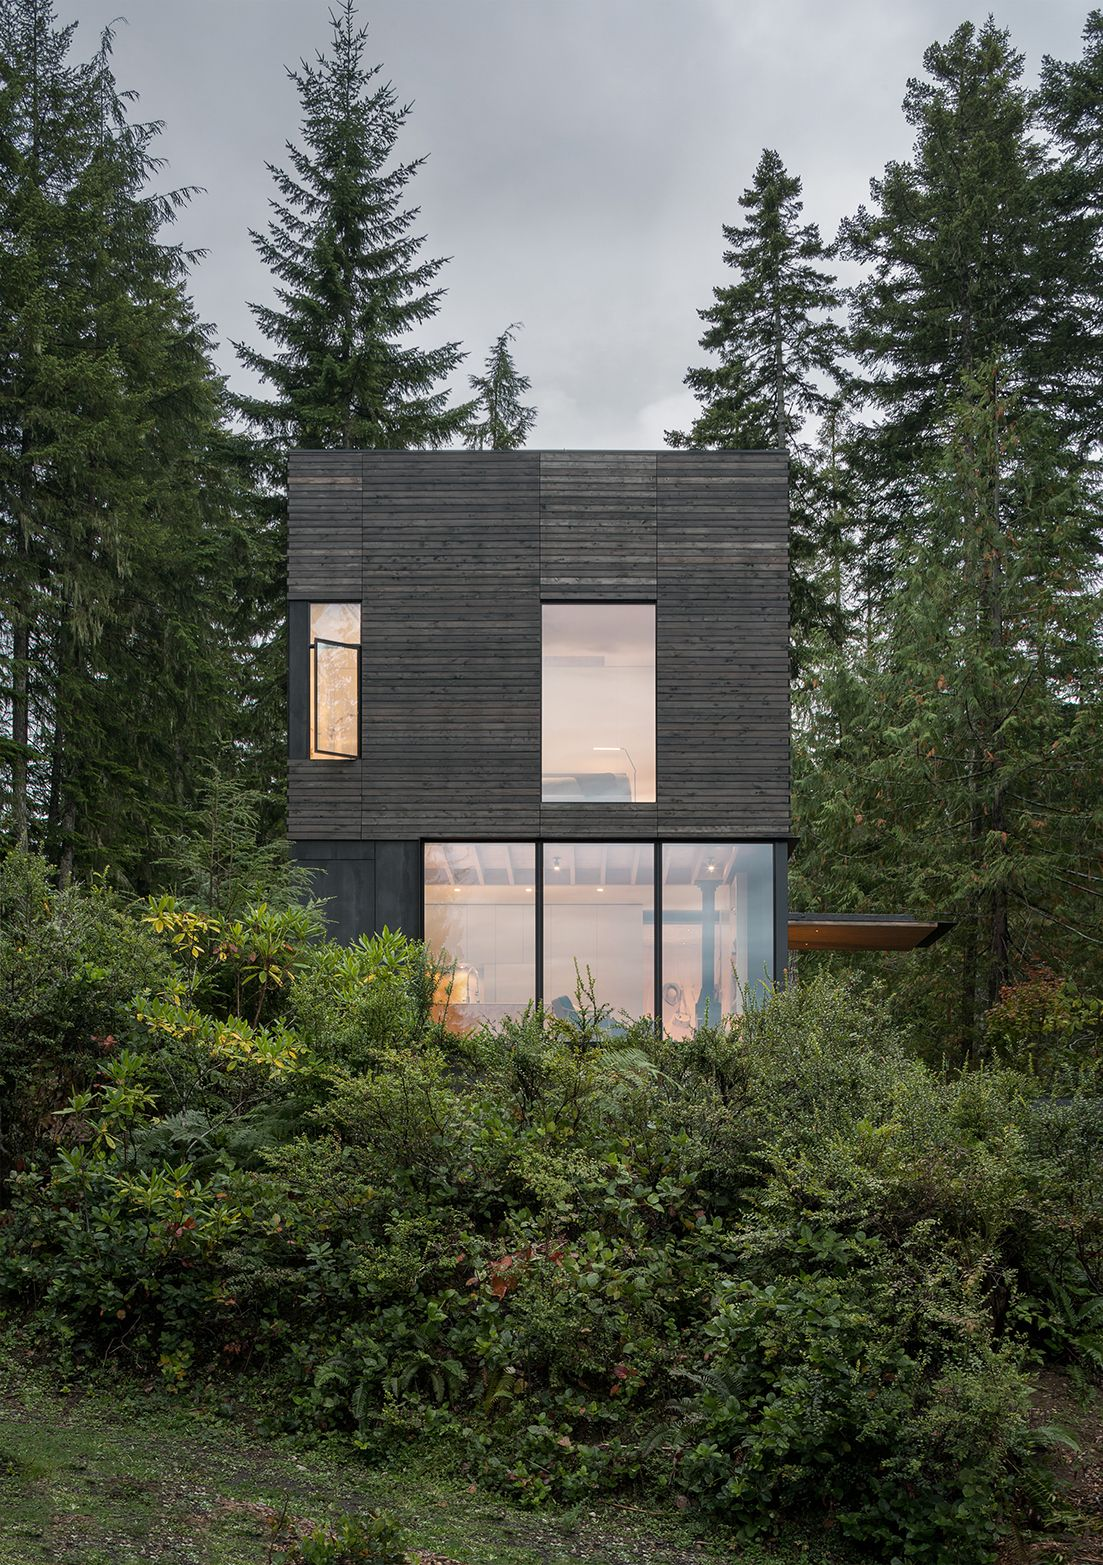 Mwworks little house hood canal 1 a f a s i a for Hood canal cabin for sale